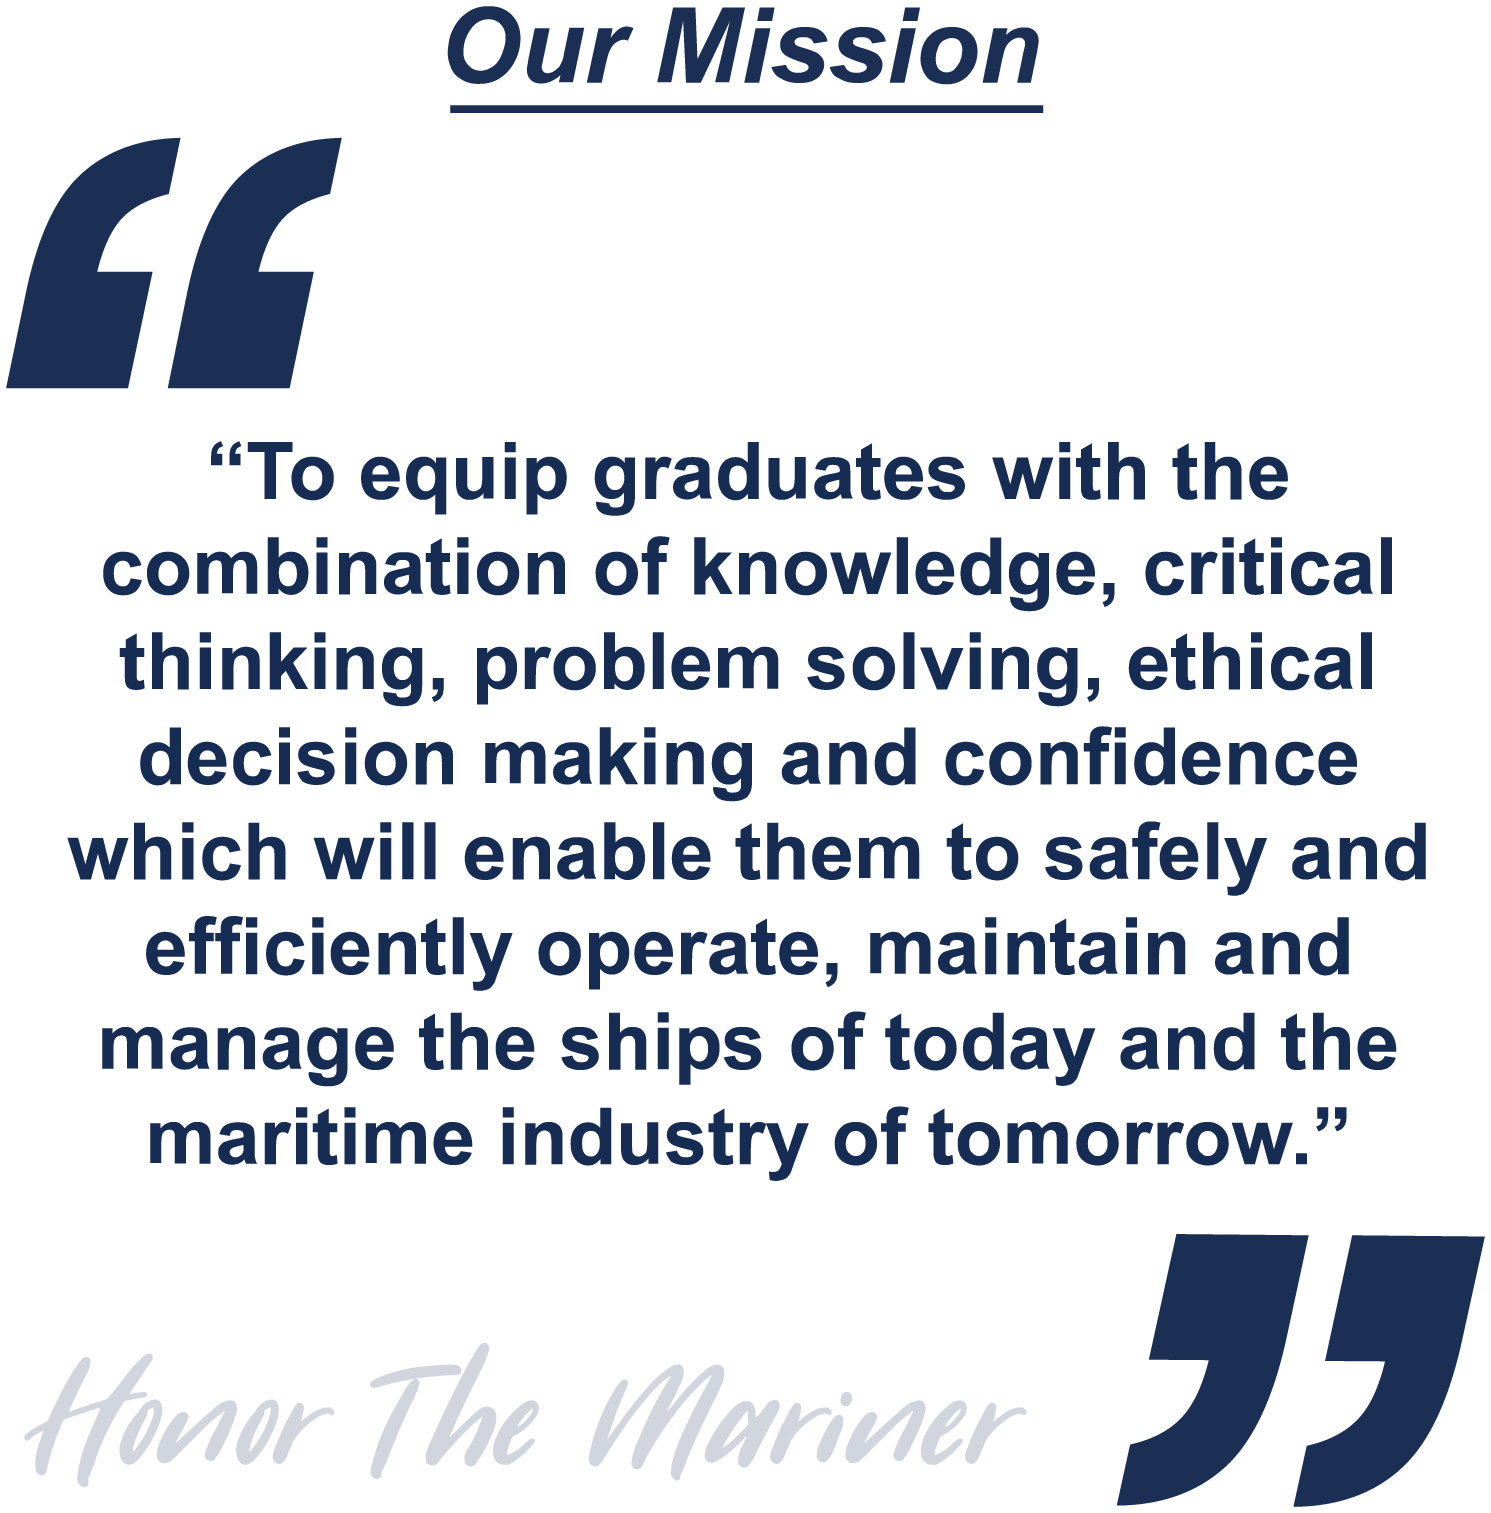 Northeast Maritime Institute's Mission Statement